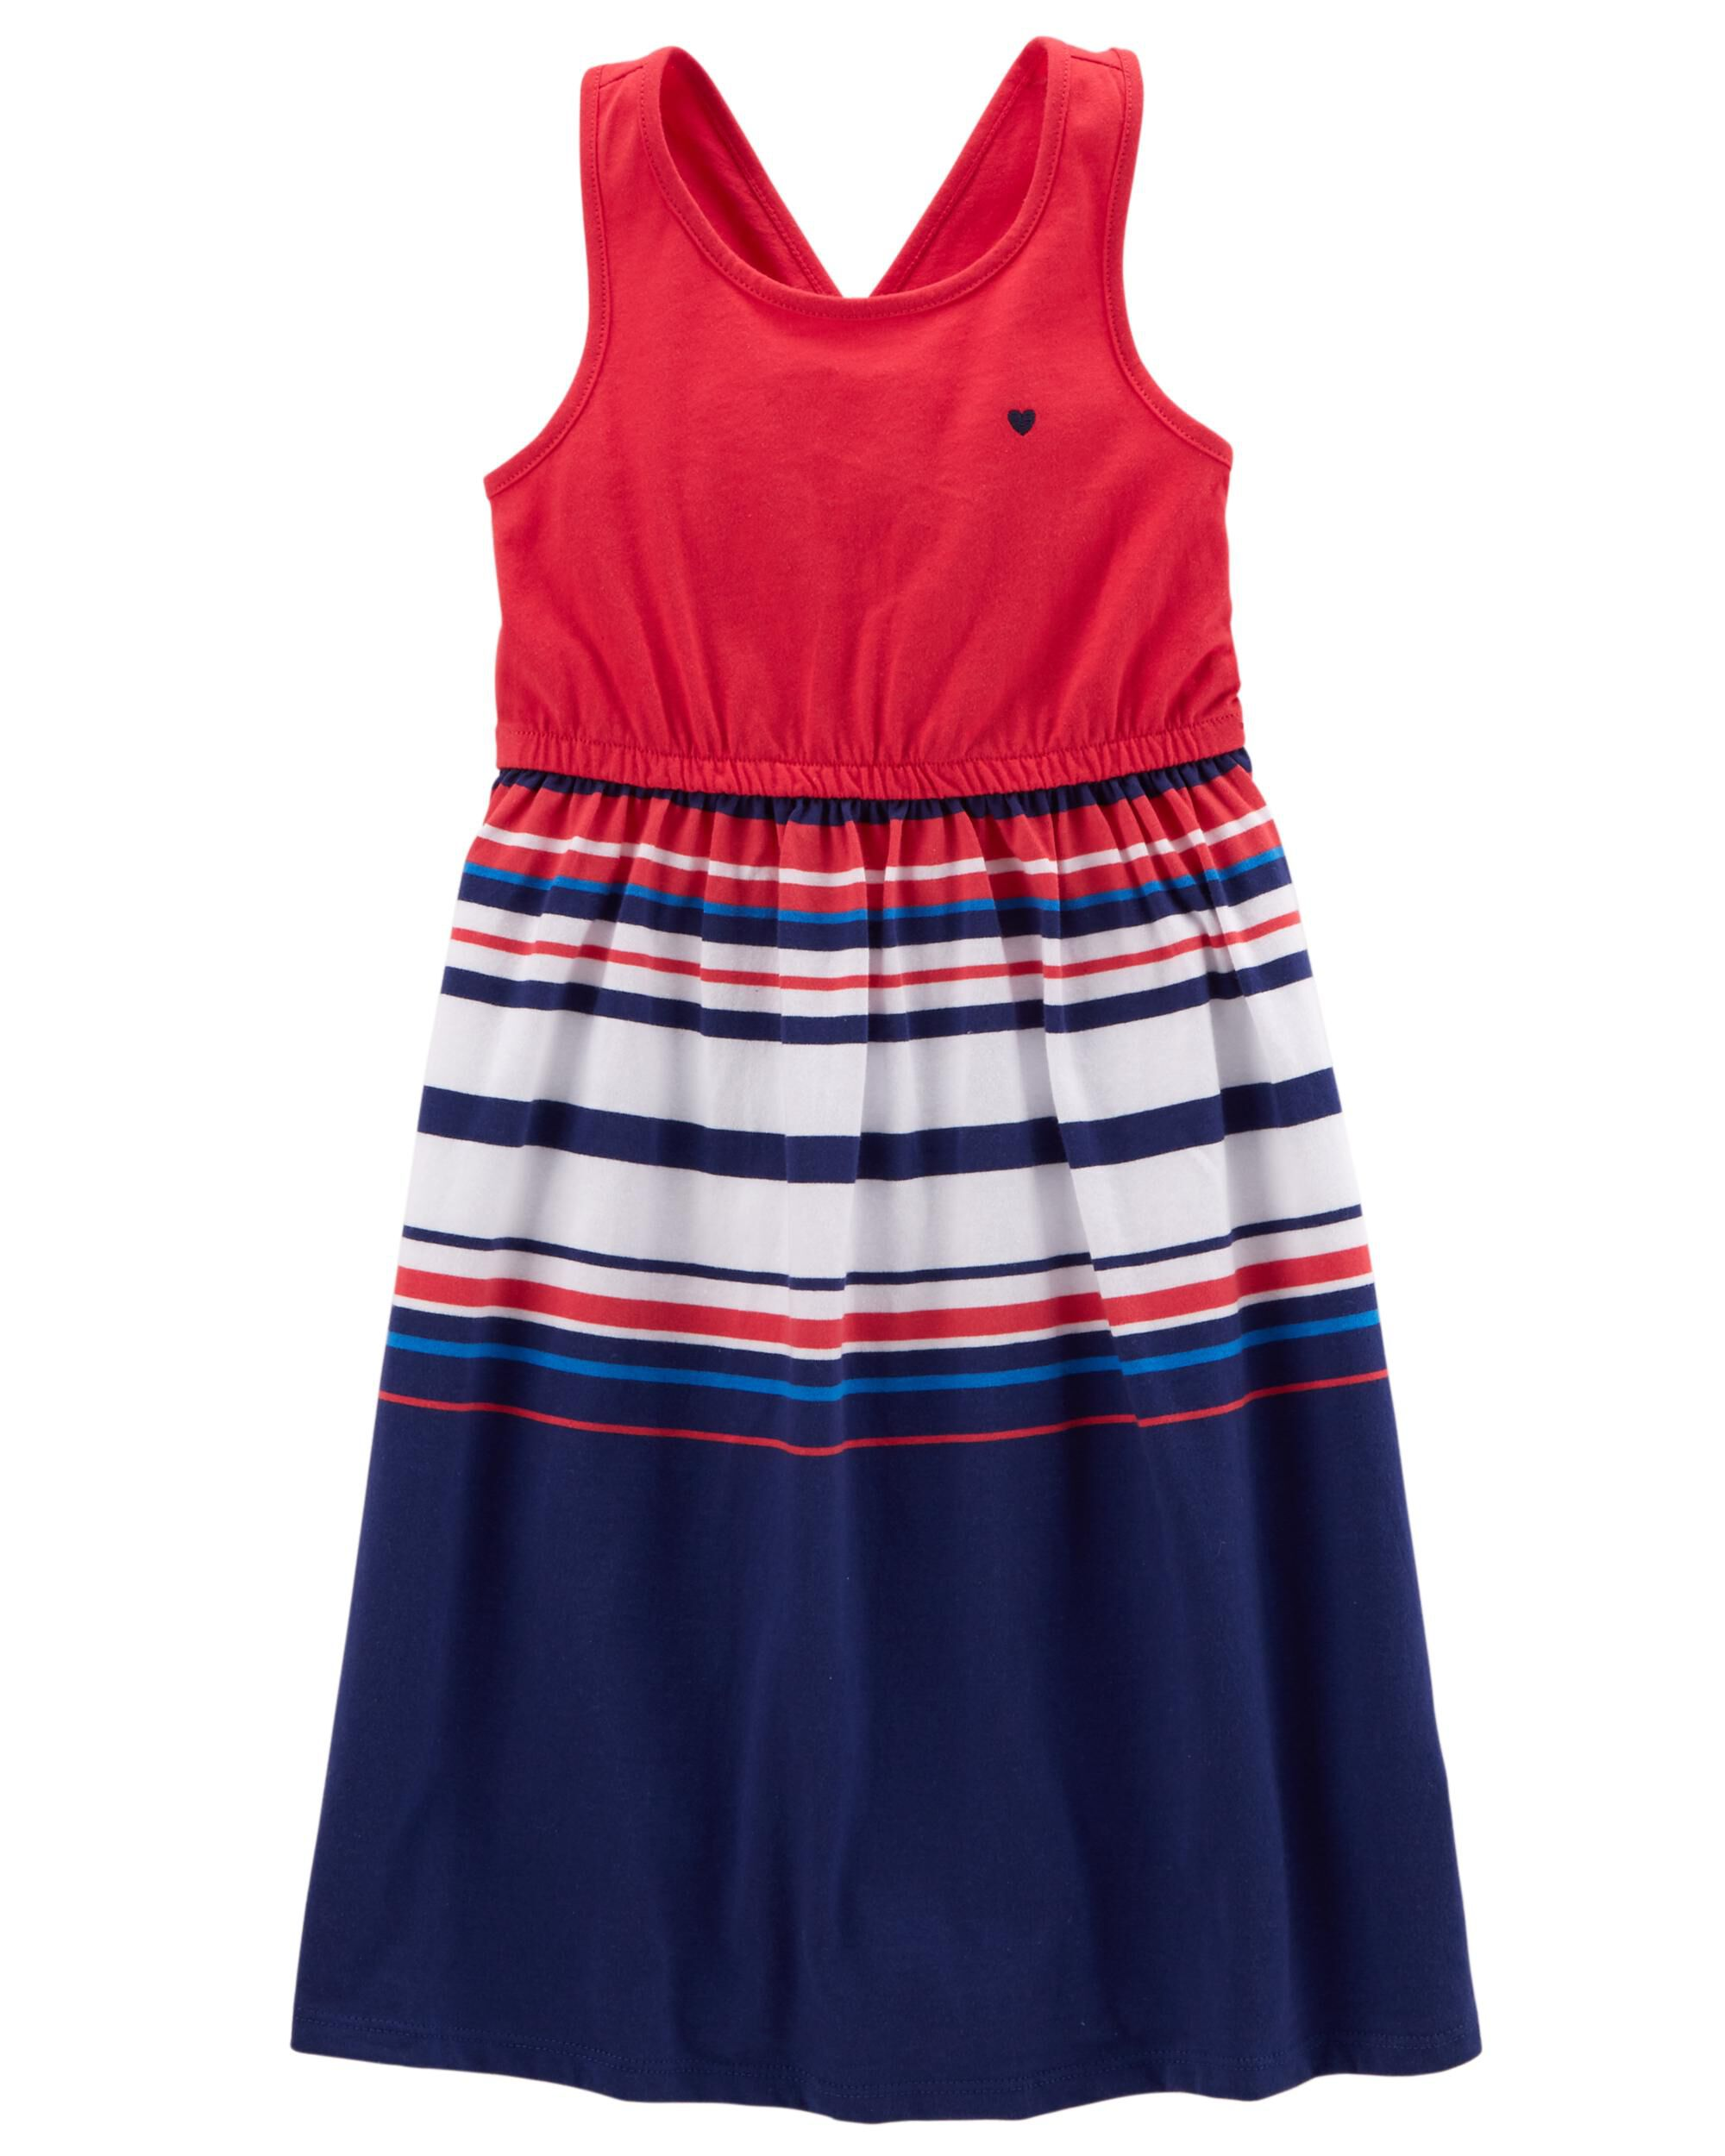 Toddler Dresses Casual